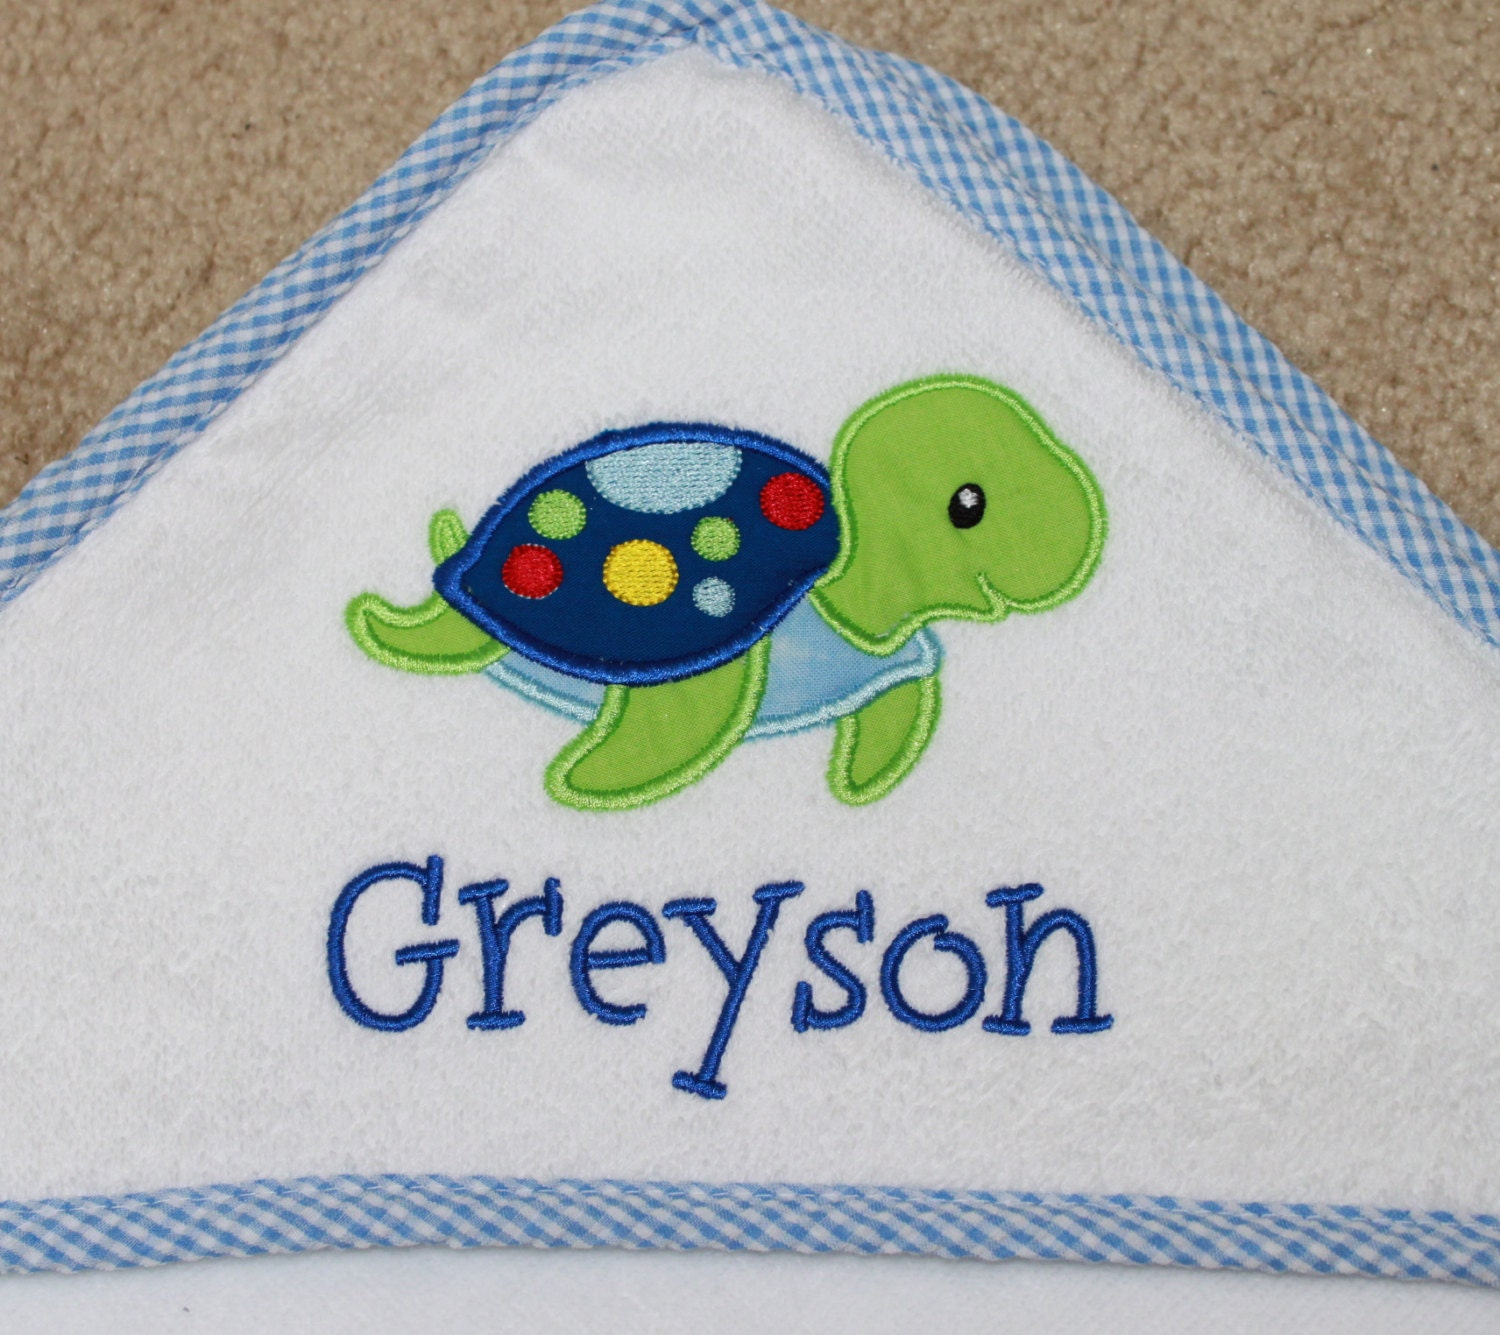 Hooded Bath Towel Personalized Towel Baby Bath Towel Sea